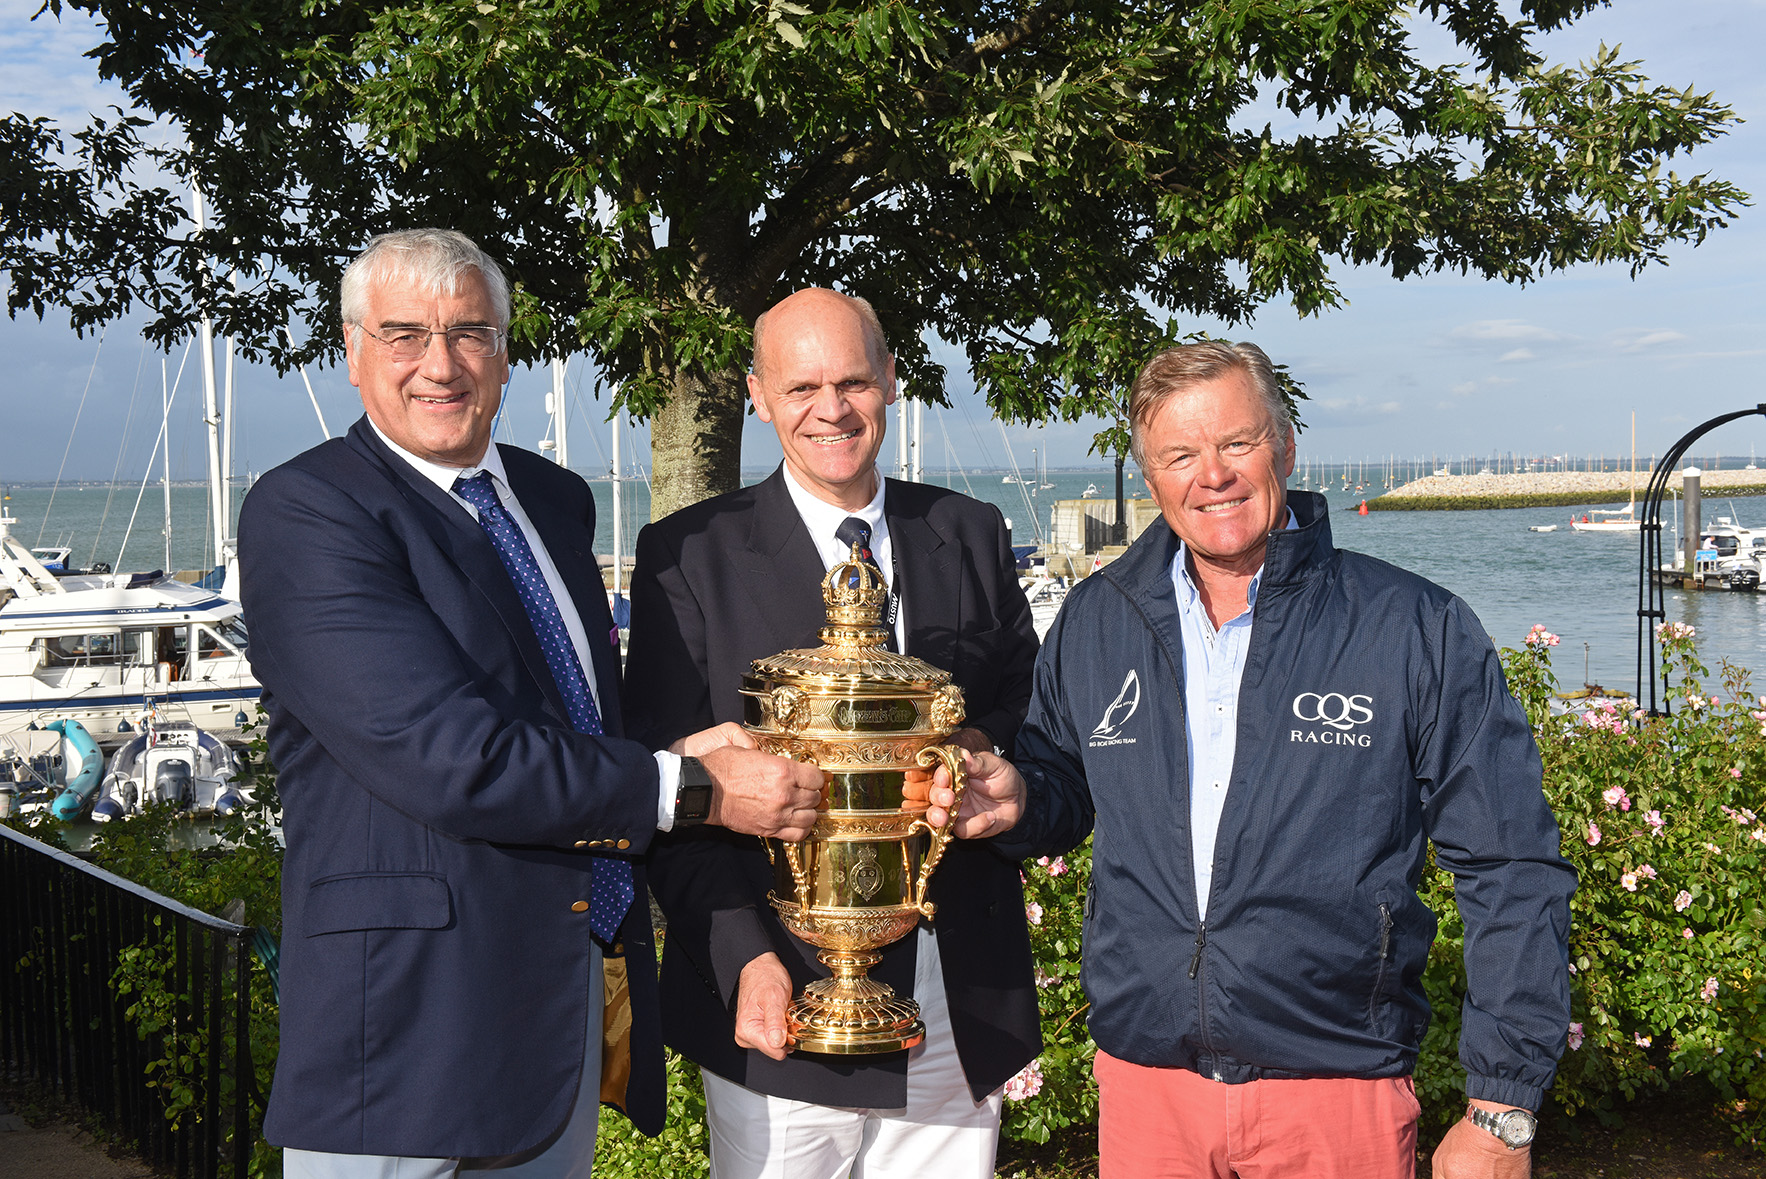 Sir-Michael-Hintze-left-and-Ludde-Ingvall-right-receive-the-Queens-Cup